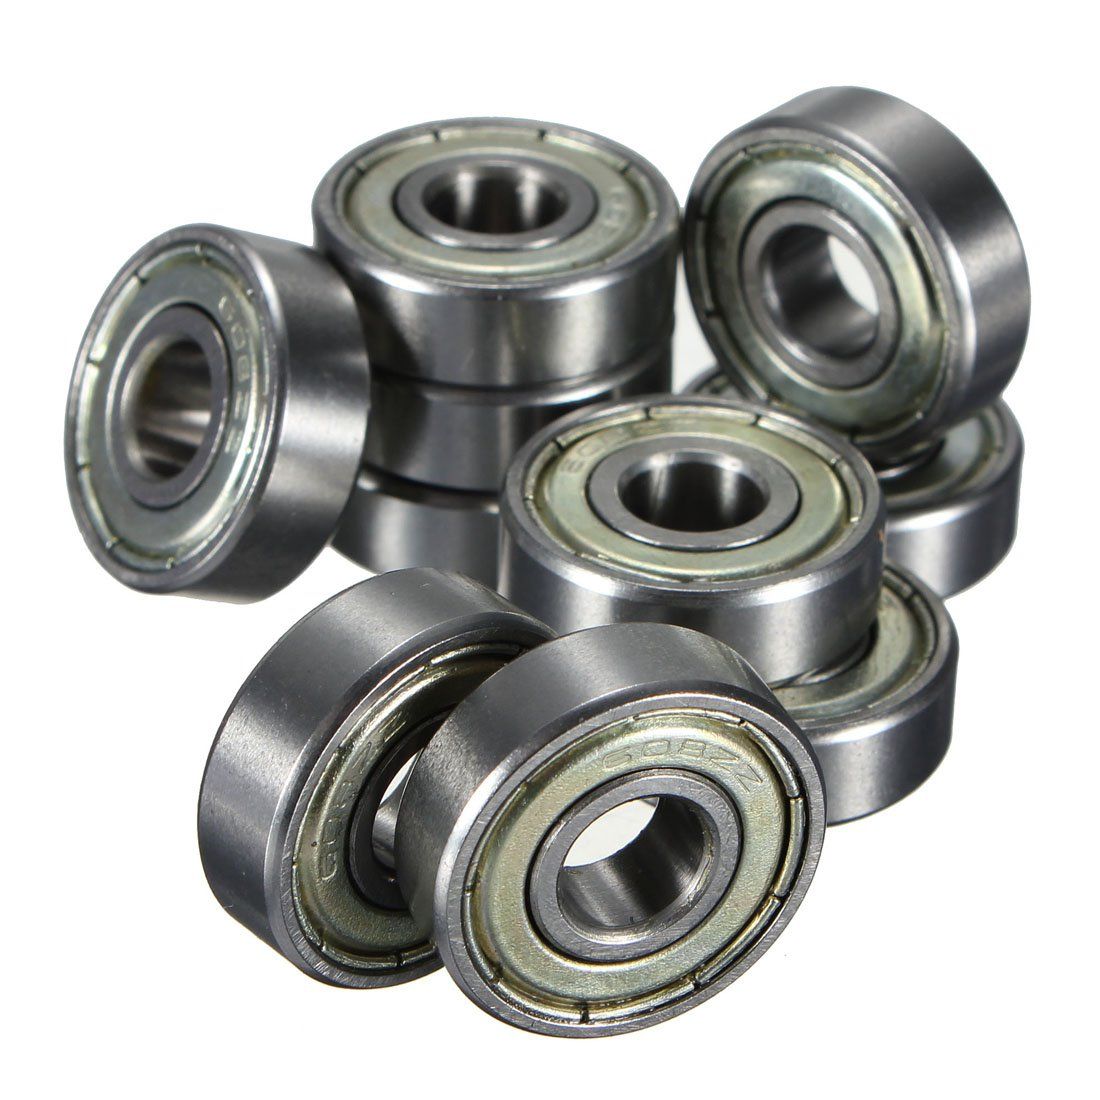 BOFO 10 pcs. Ball bearings miniature deep groove ball bearings 608 ZZ 8 x 22 x 7mm Bearing Steel image